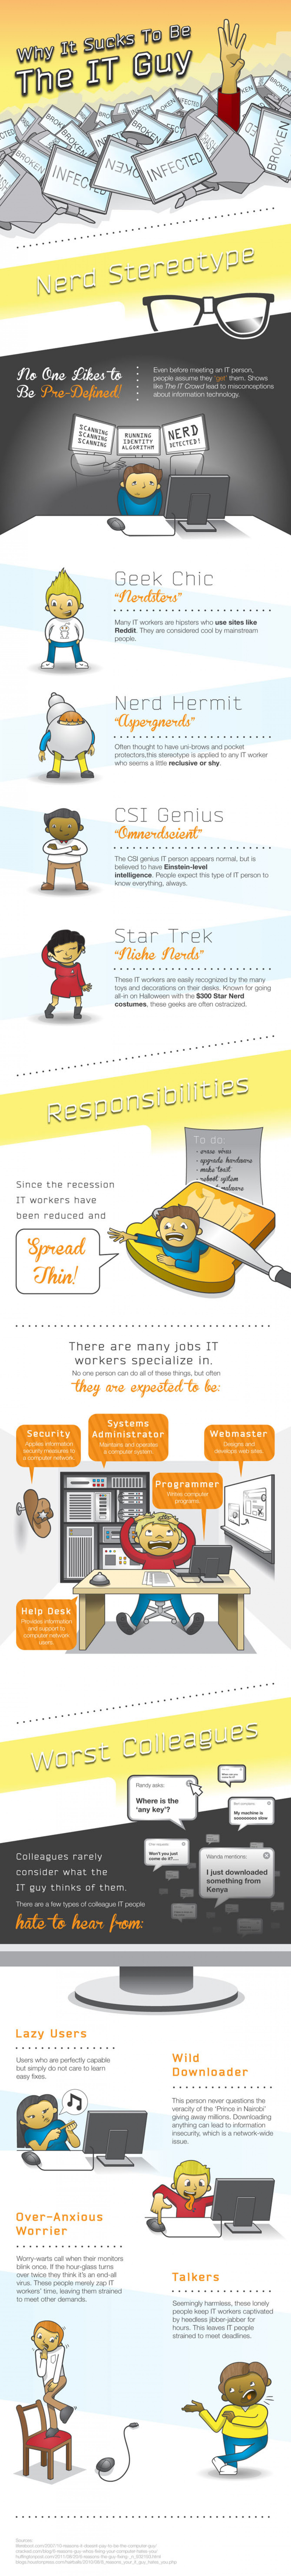 Why it sucks to be the IT guy Infographic